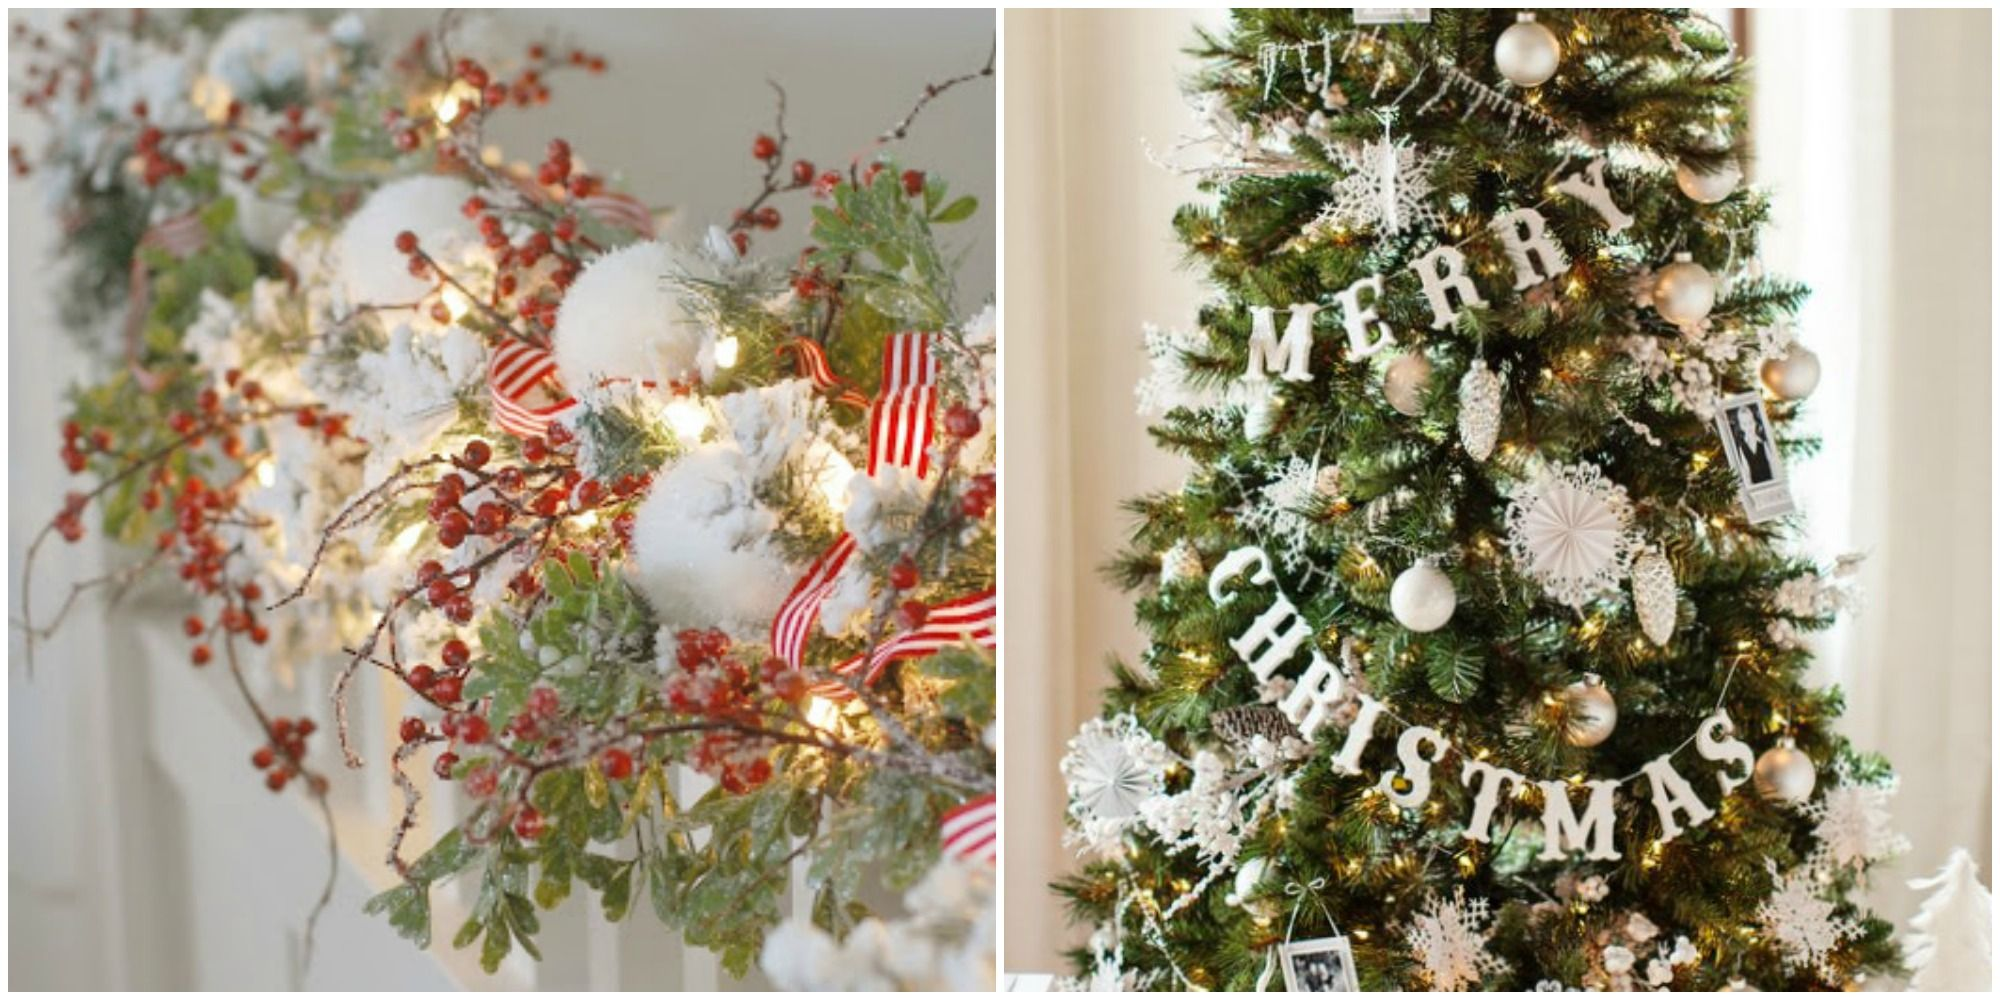 Image source: betterdecoratingbible.com  door-christmas-garland-ideas